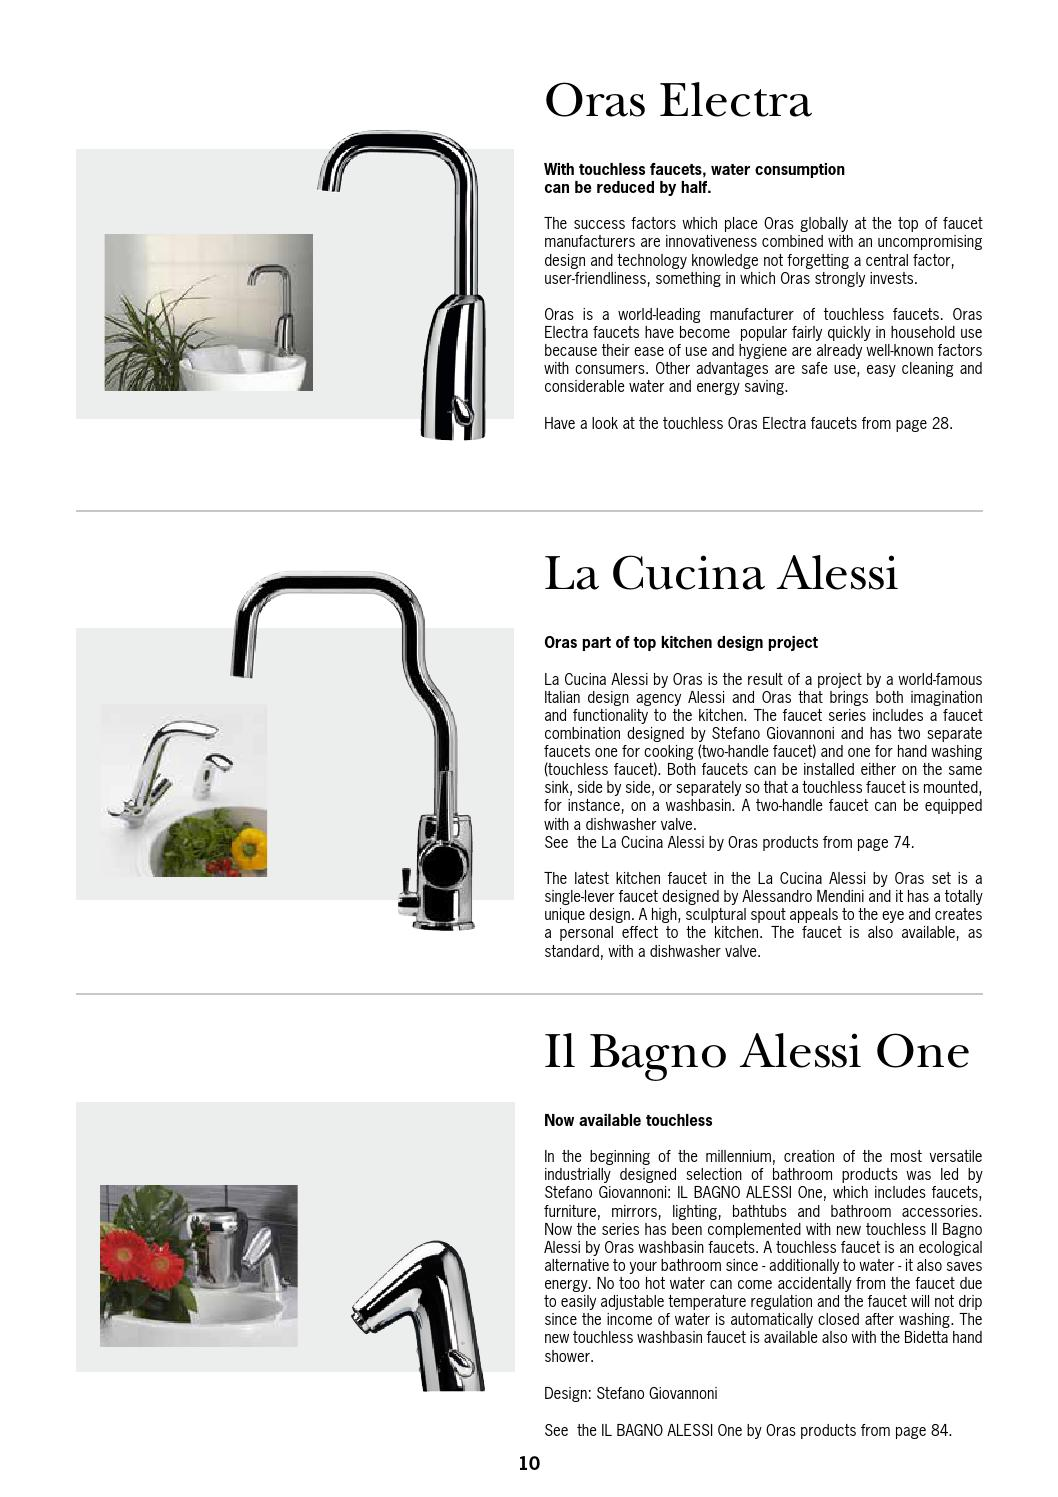 La Cucina Alessi Kitchens Oras Technic Catalogue 2014 By Iris Issuu